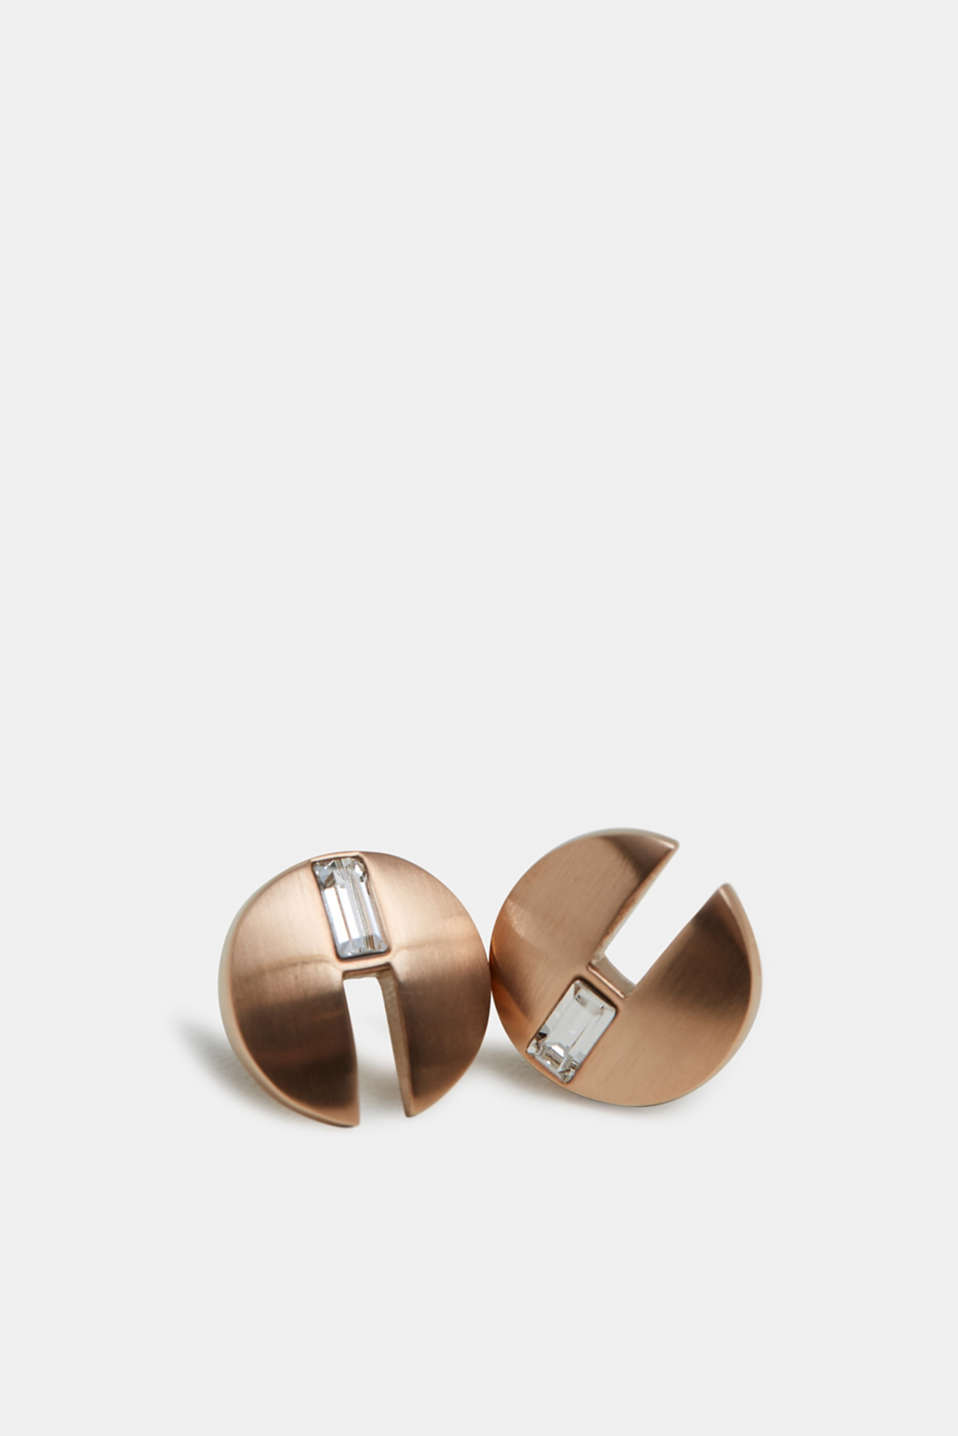 Stainless steel stud earrings with baguette stones, ROSEGOLD, detail image number 1